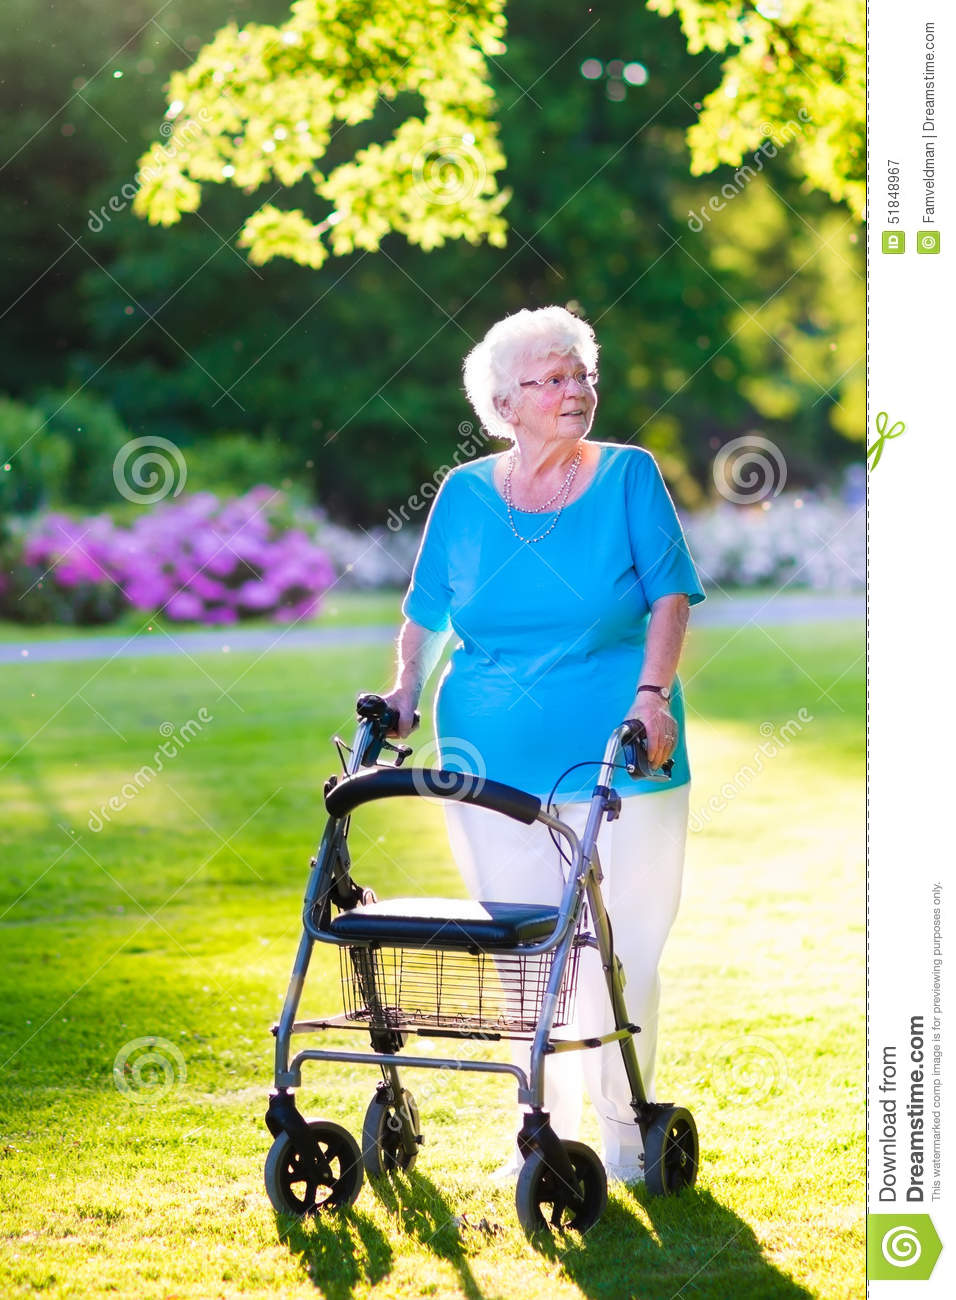 senior citizen chair used lift chairs lady with a walking aid in the park stock image - of healthcare, elderly: 51848967